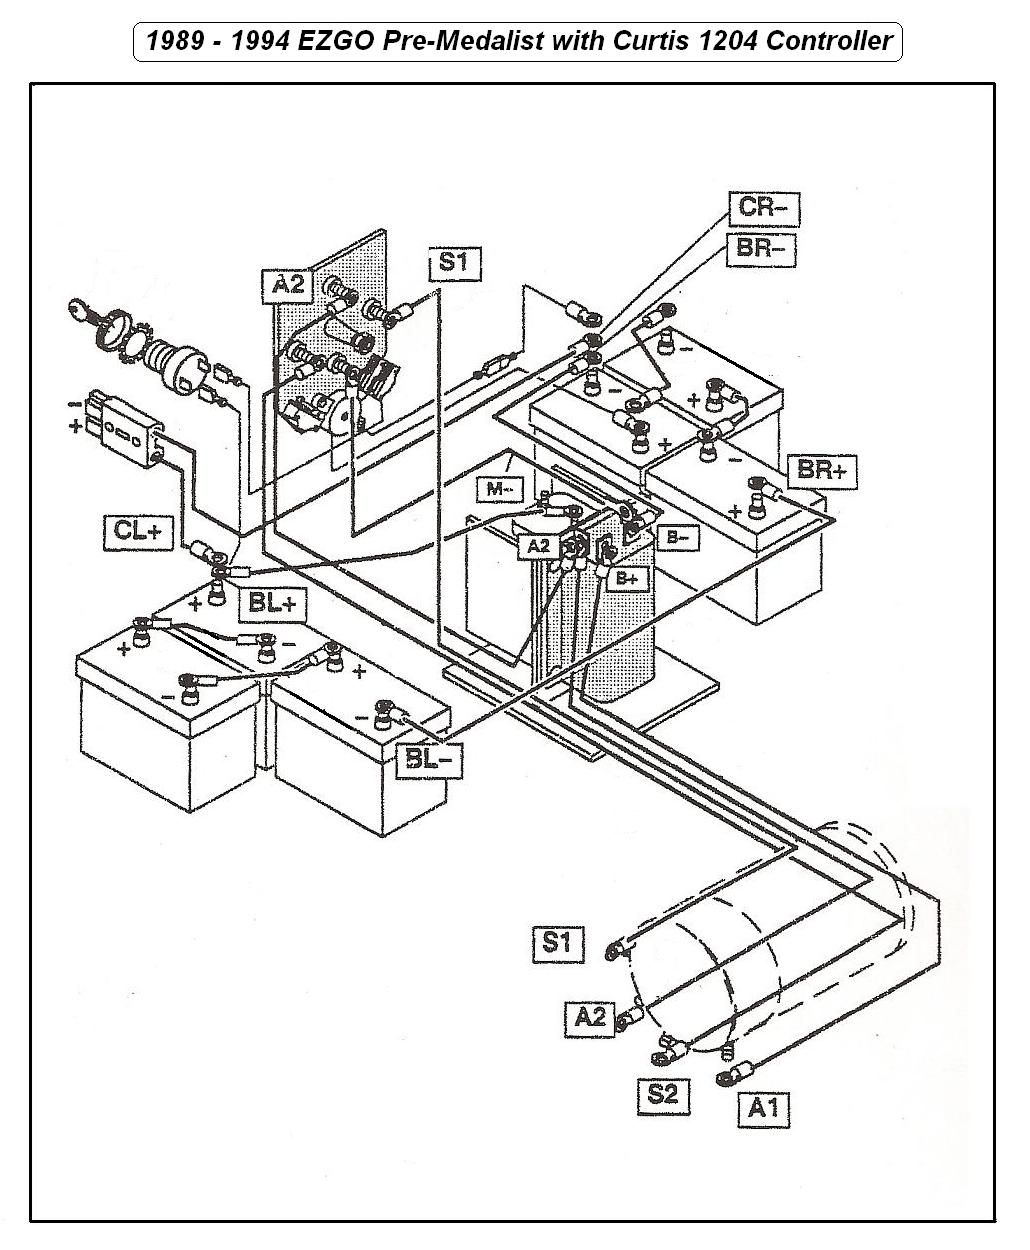 1986 ezgo golf cart wiring diagram wiring diagram for 1986 ezgo 1986 ezgo golf cart wiring diagram wiring diagram for club car golf cart the